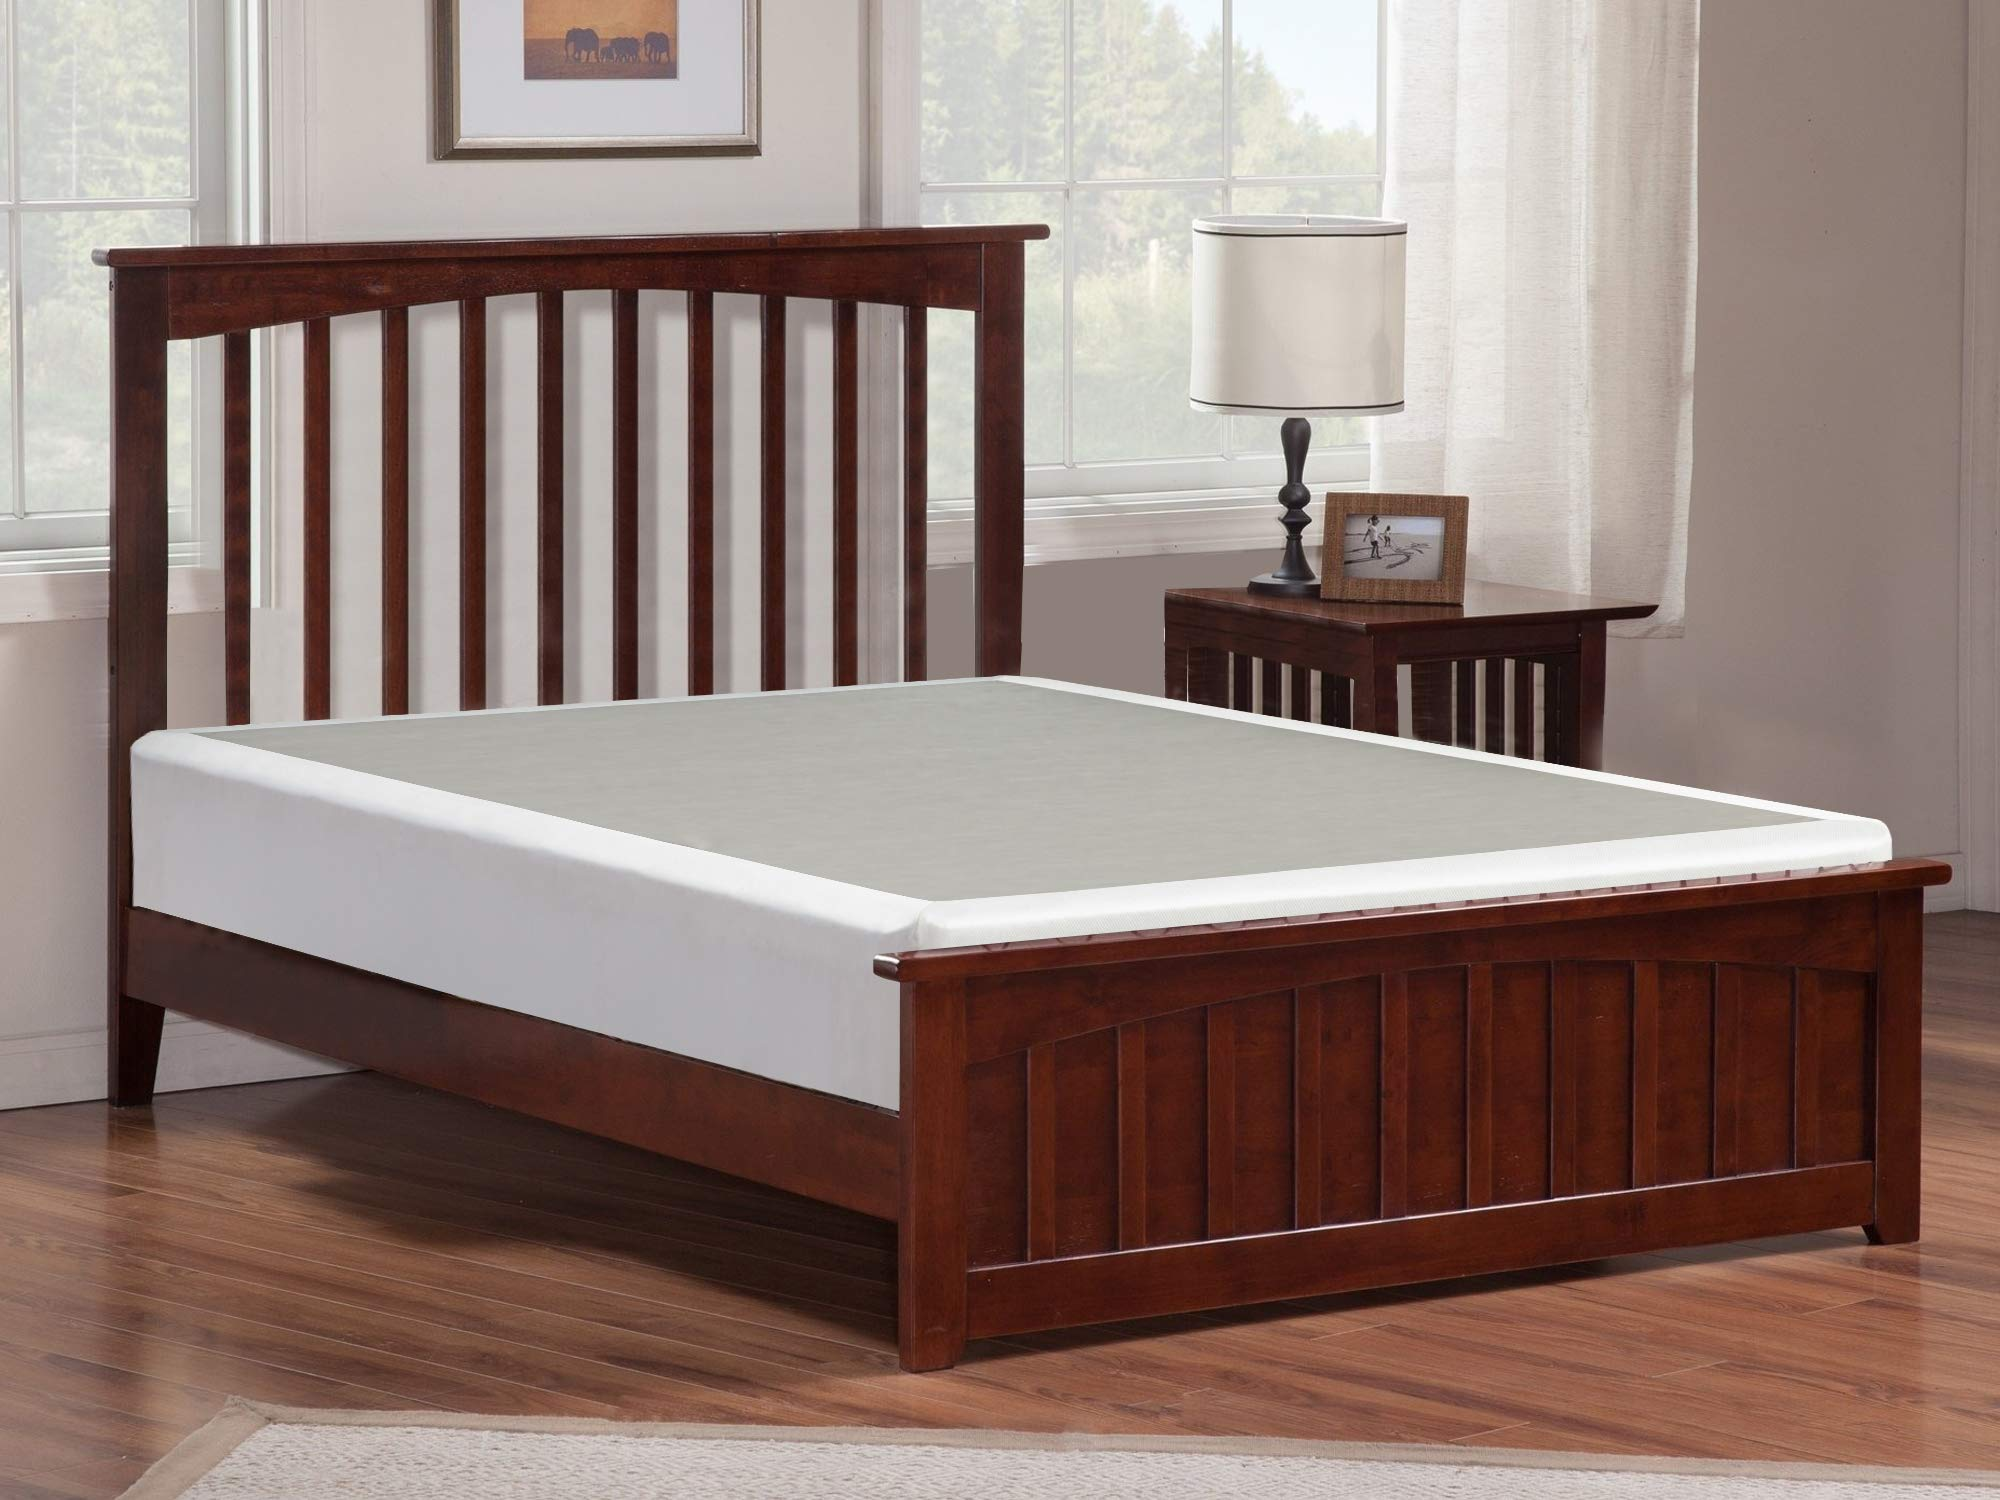 Mayton Box Spring Low Profile Mattress Foundation/Strong Structure, 53x74 by Mayton